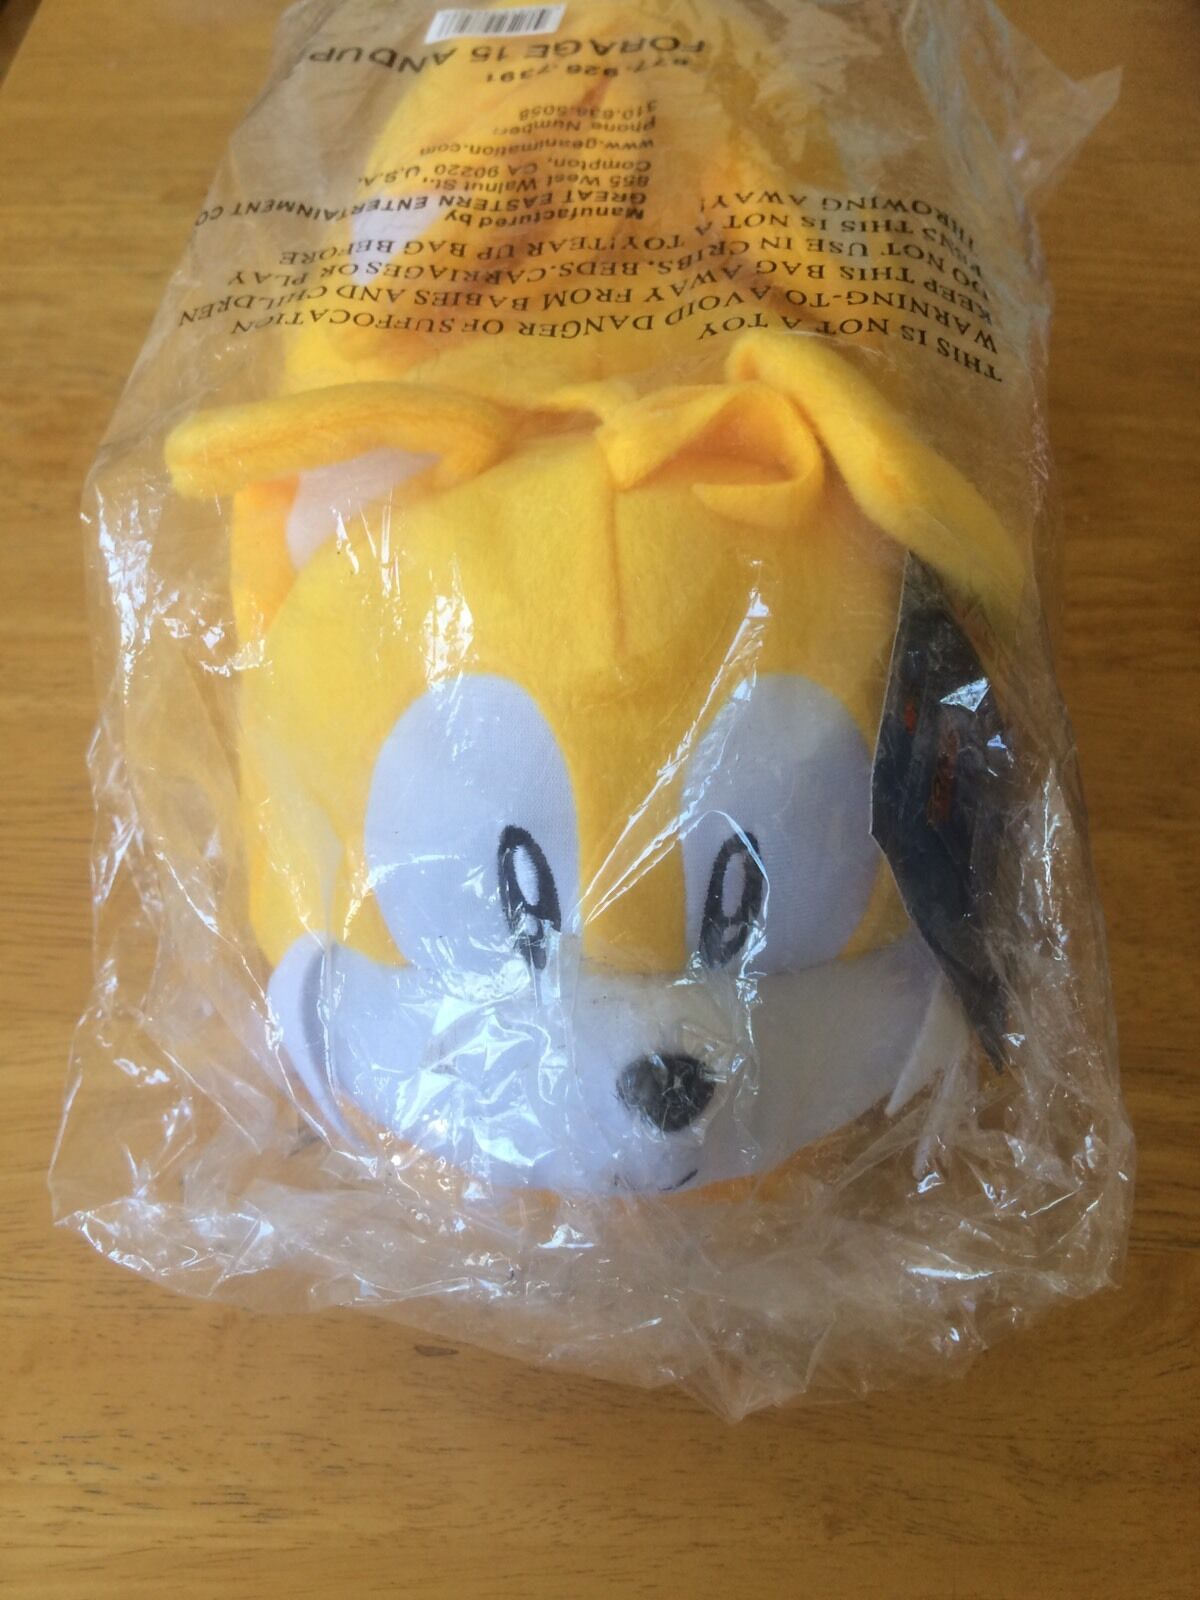 Sonic The Hedgehog Tails Slippers GE Brand Brand Brand New, Factory Sealed 72a934